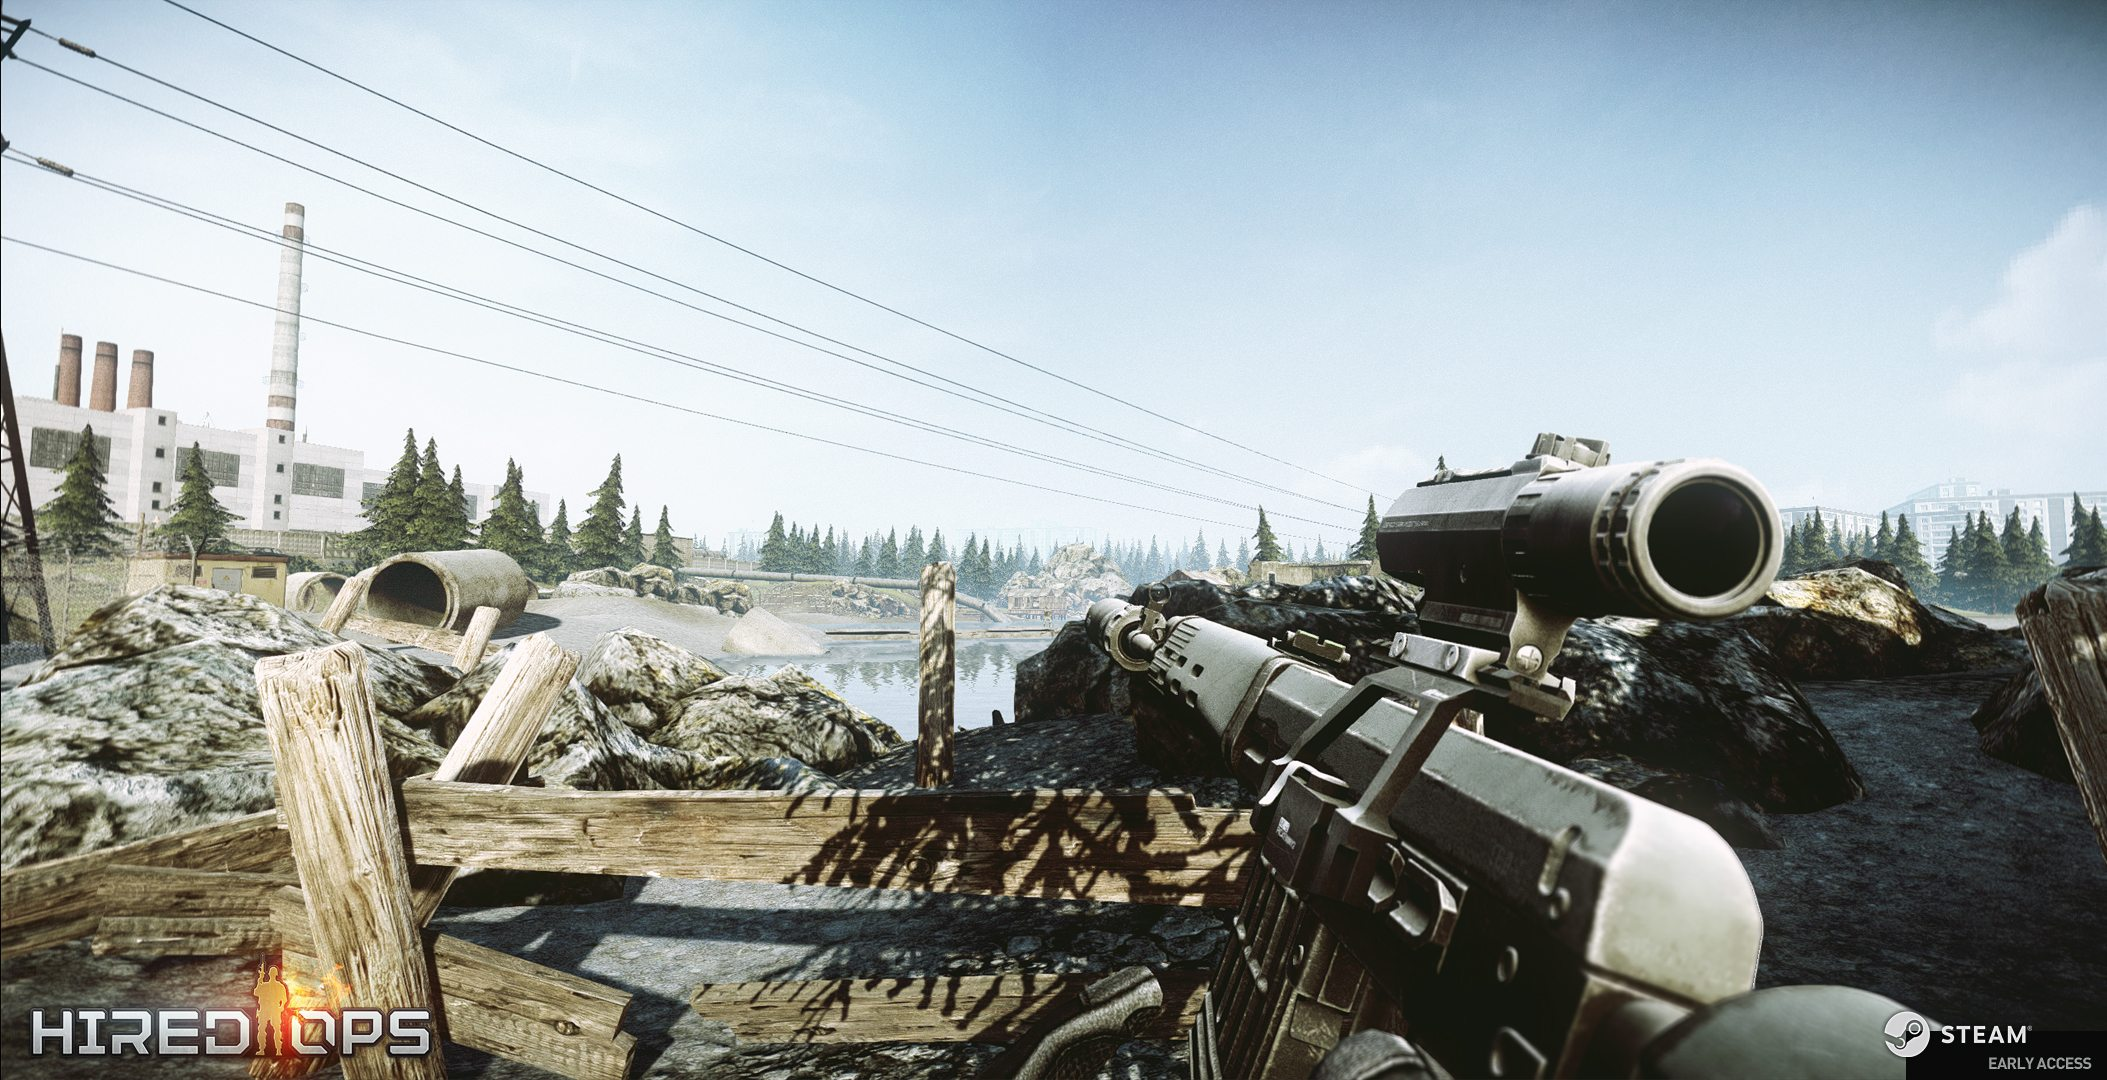 HIRED OPS First Person Shooter Adds New Updates, Map and Trailer